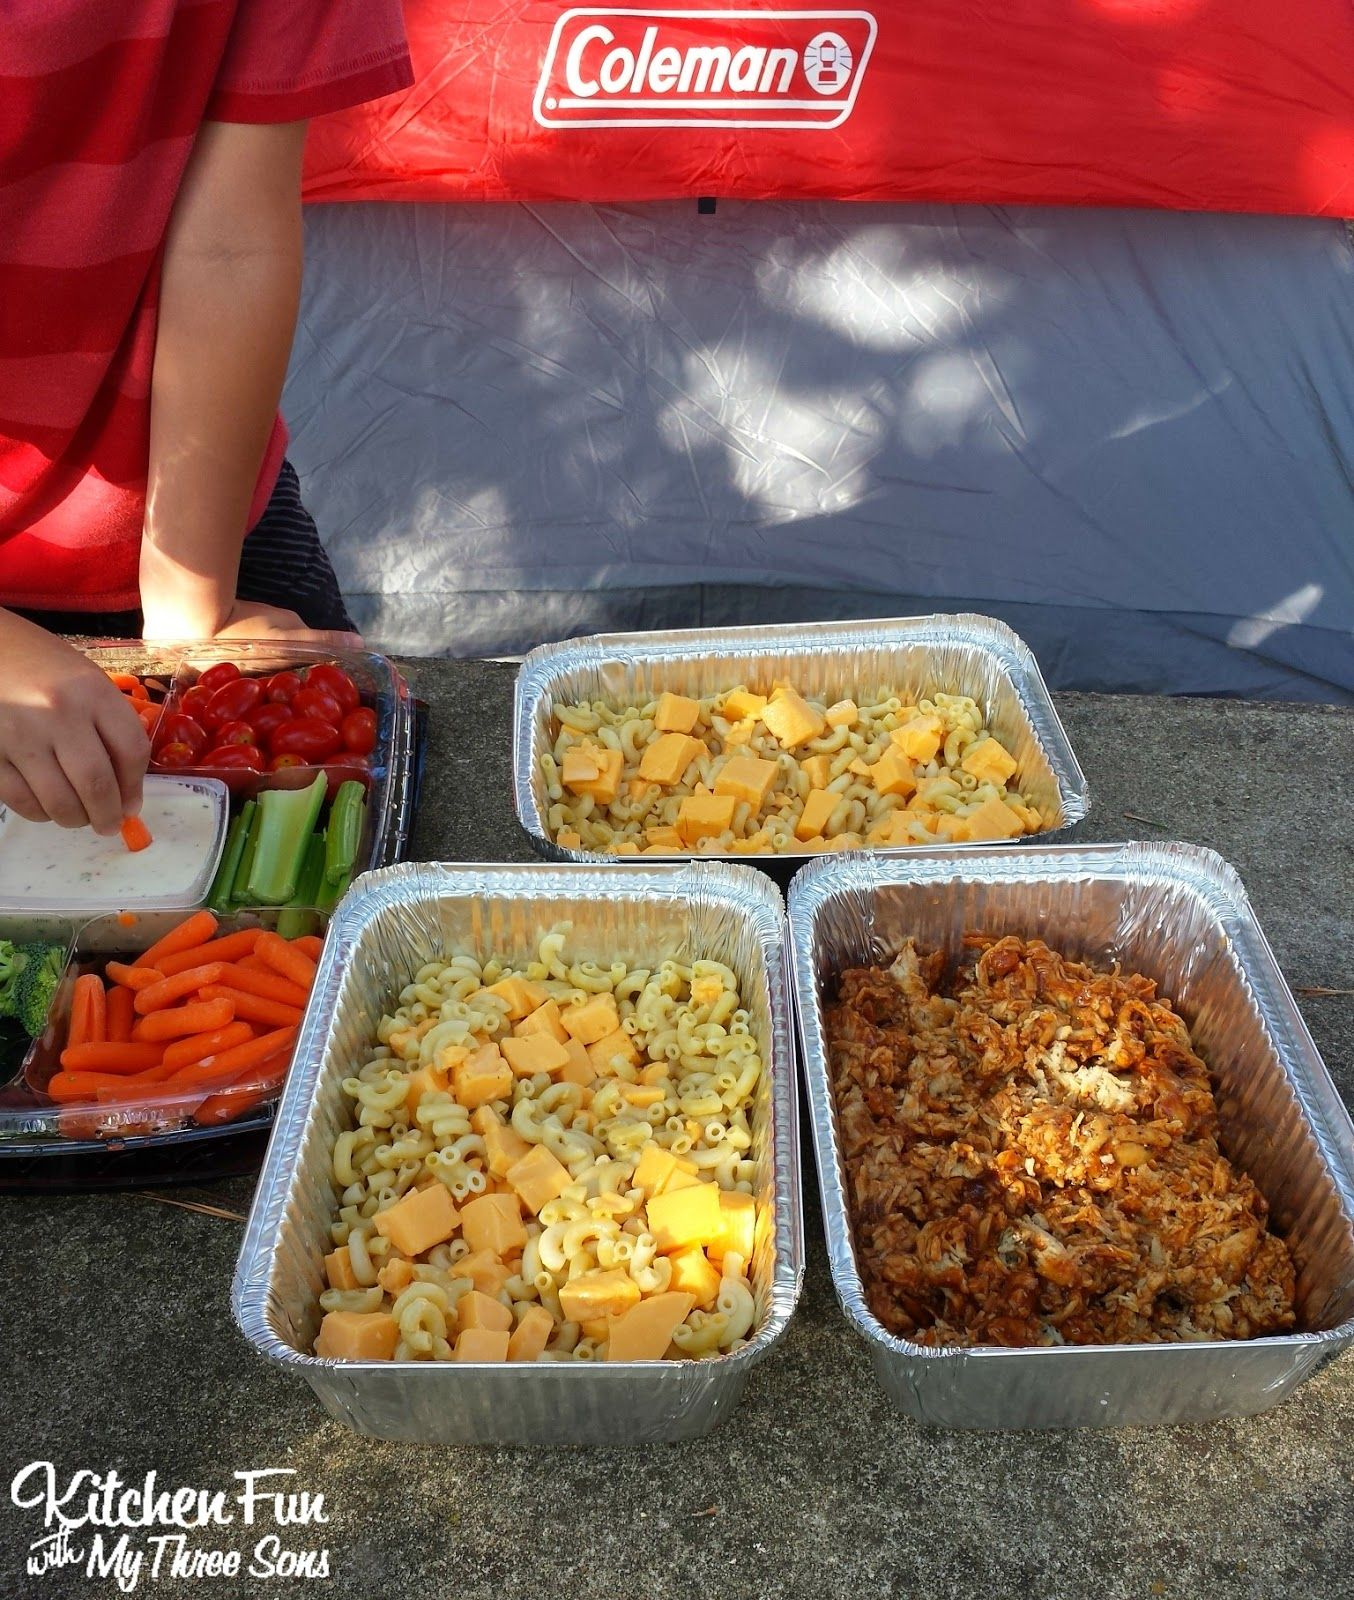 Kids Campfire Cooking And Recipes For Outdoor Cooking For: Camping Recipes & Ideas That Kids Will Love From